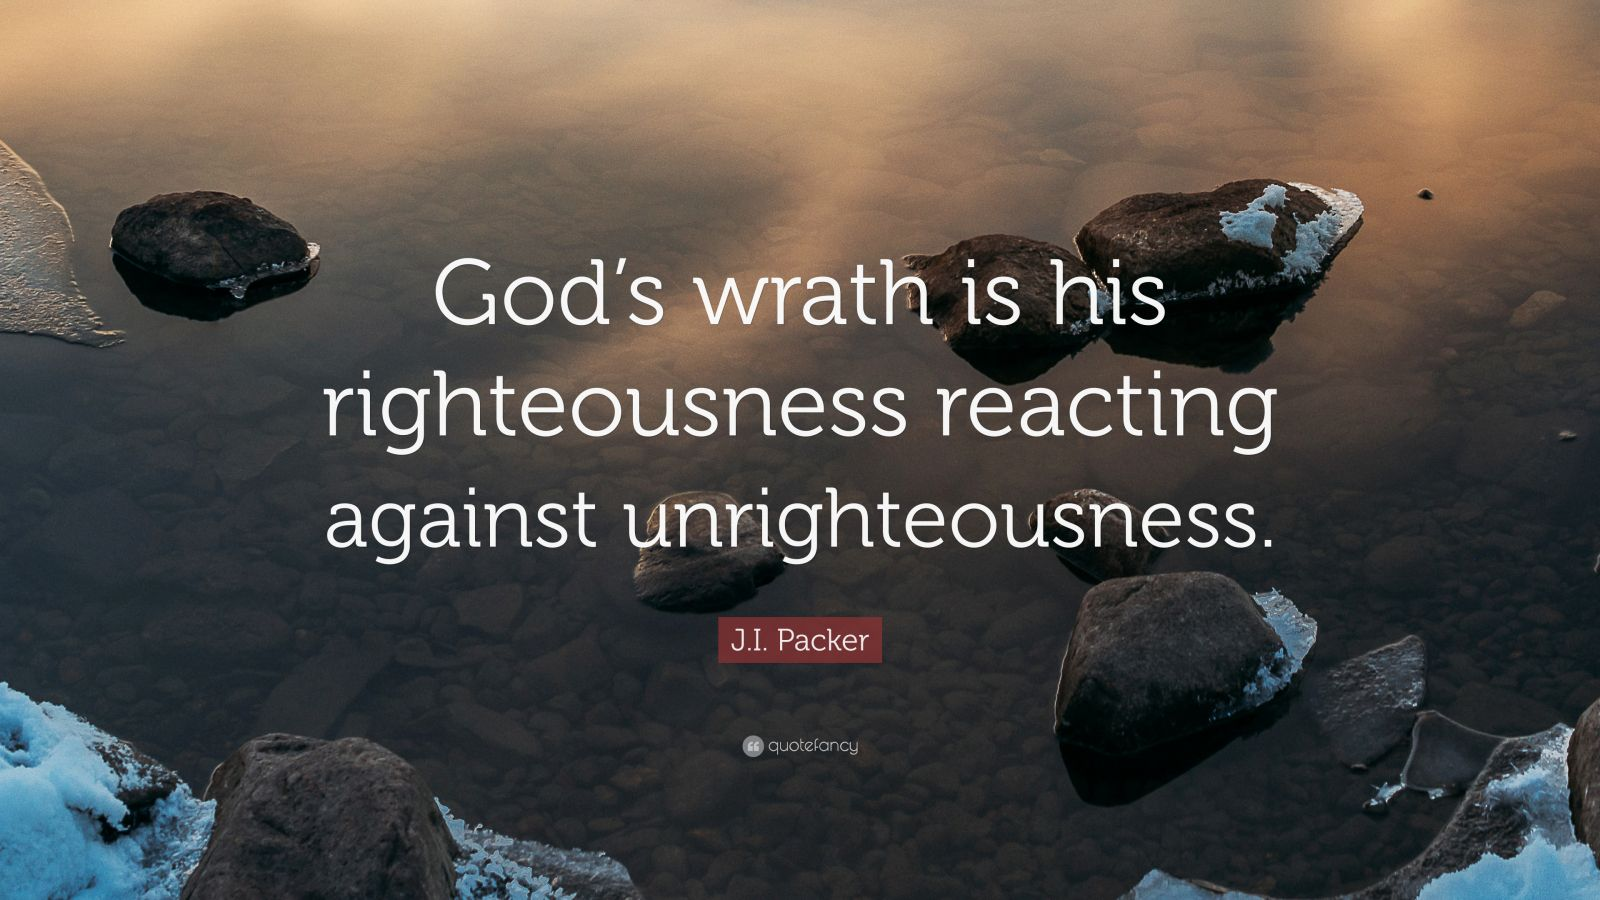 """J.I. Packer Quote: """"God's wrath is his righteousness reacting against unrighteousness."""""""